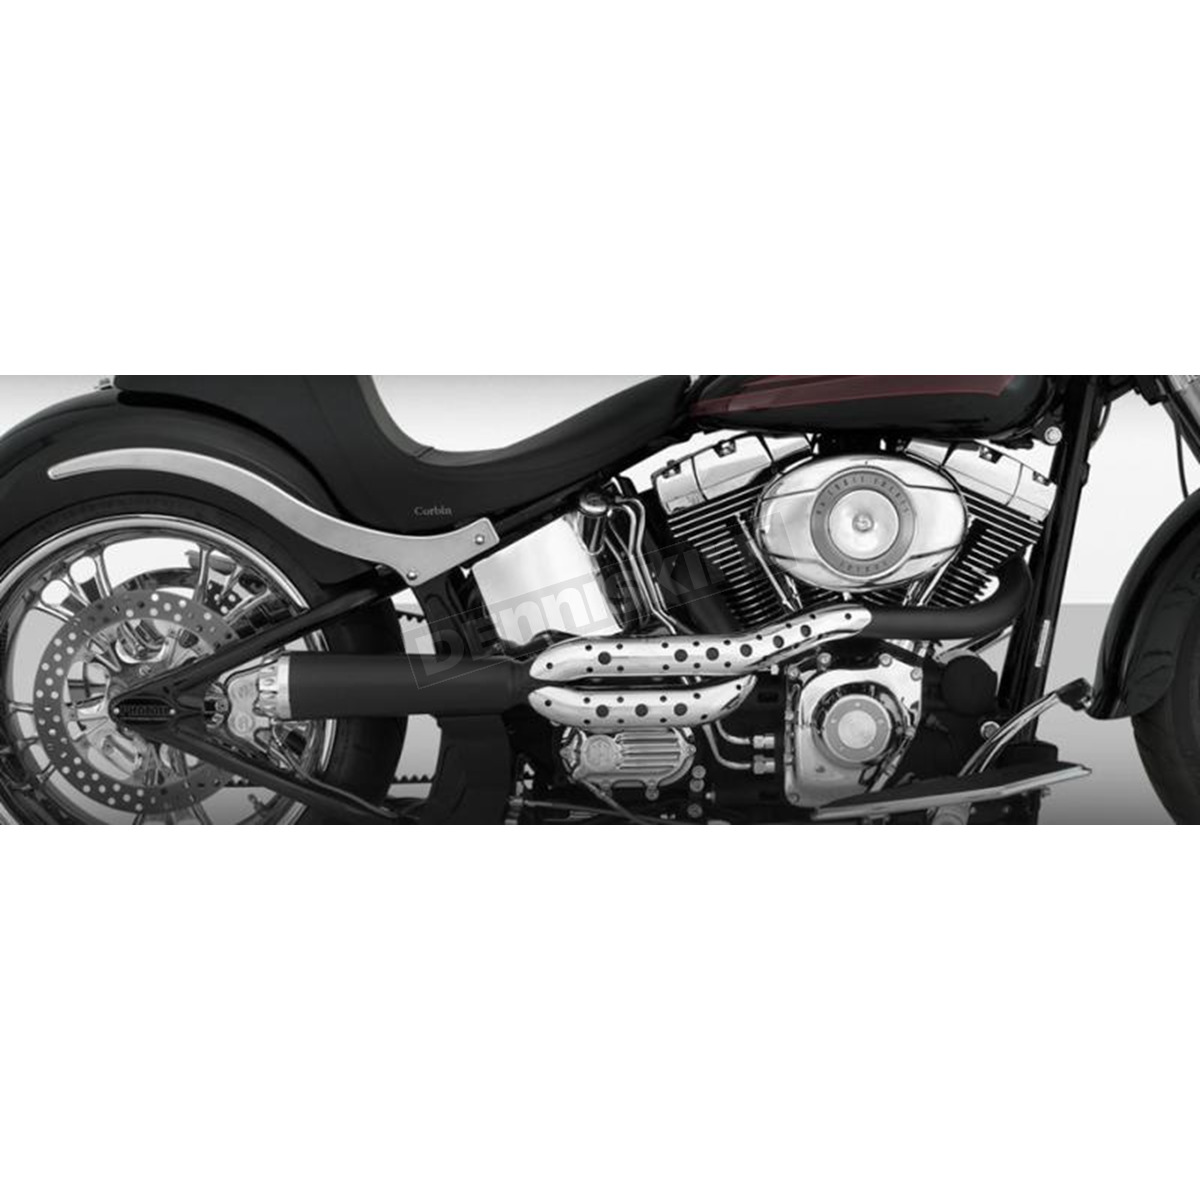 Chrome/Black Track 2-into-1 High Pipe Exhaust - 11821